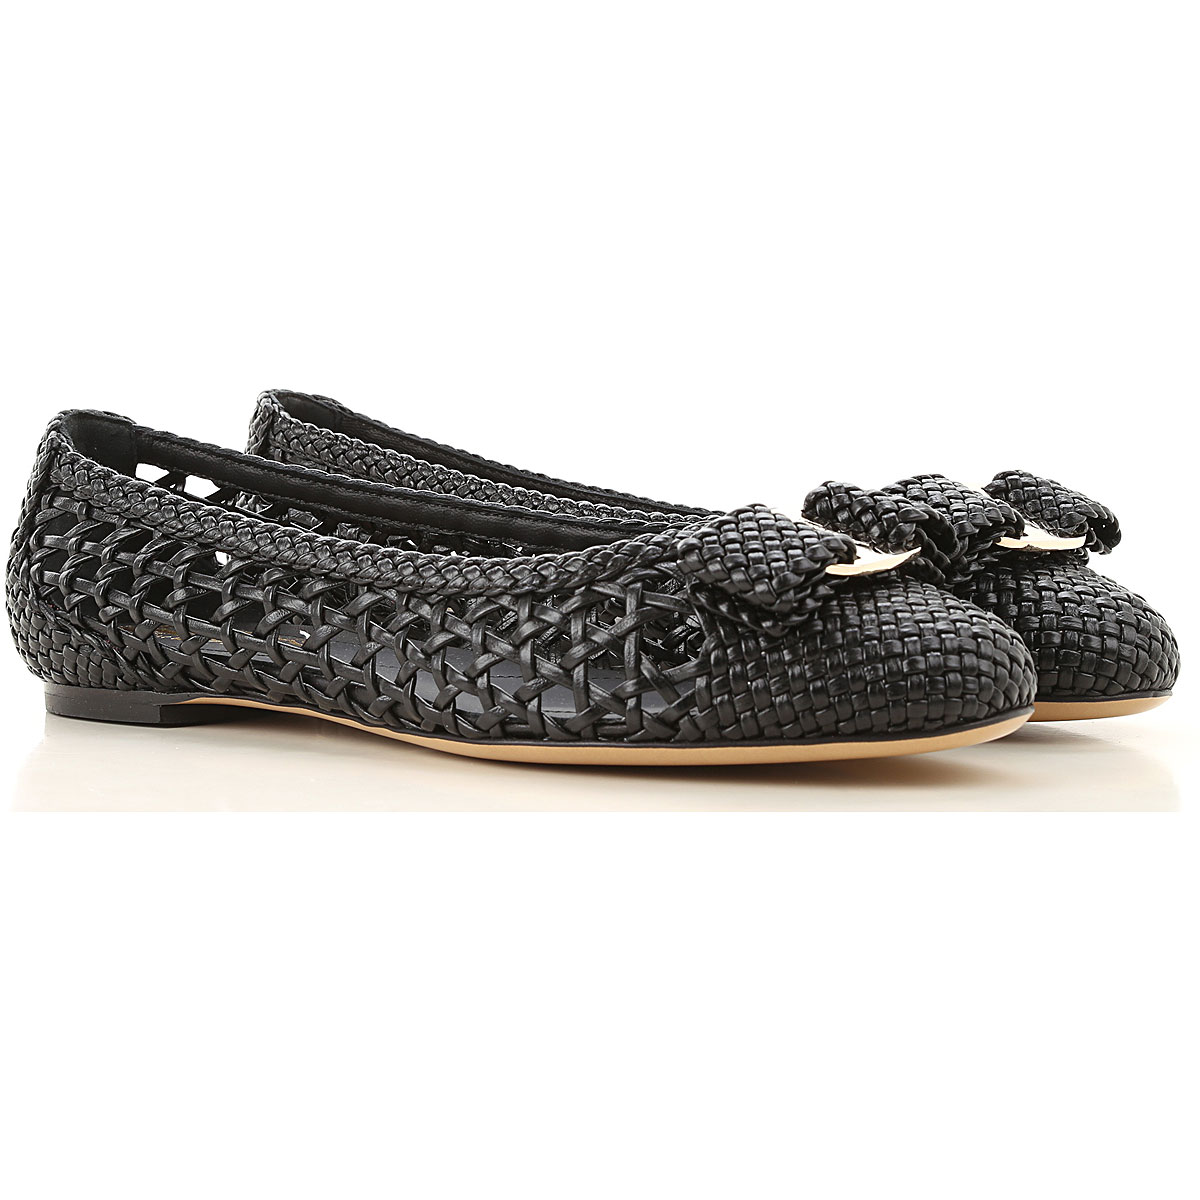 Salvatore Ferragamo Ballet Flats Ballerina Shoes for Women On Sale in Outlet, Black, Leather, 2019, 5.5 6 8.5